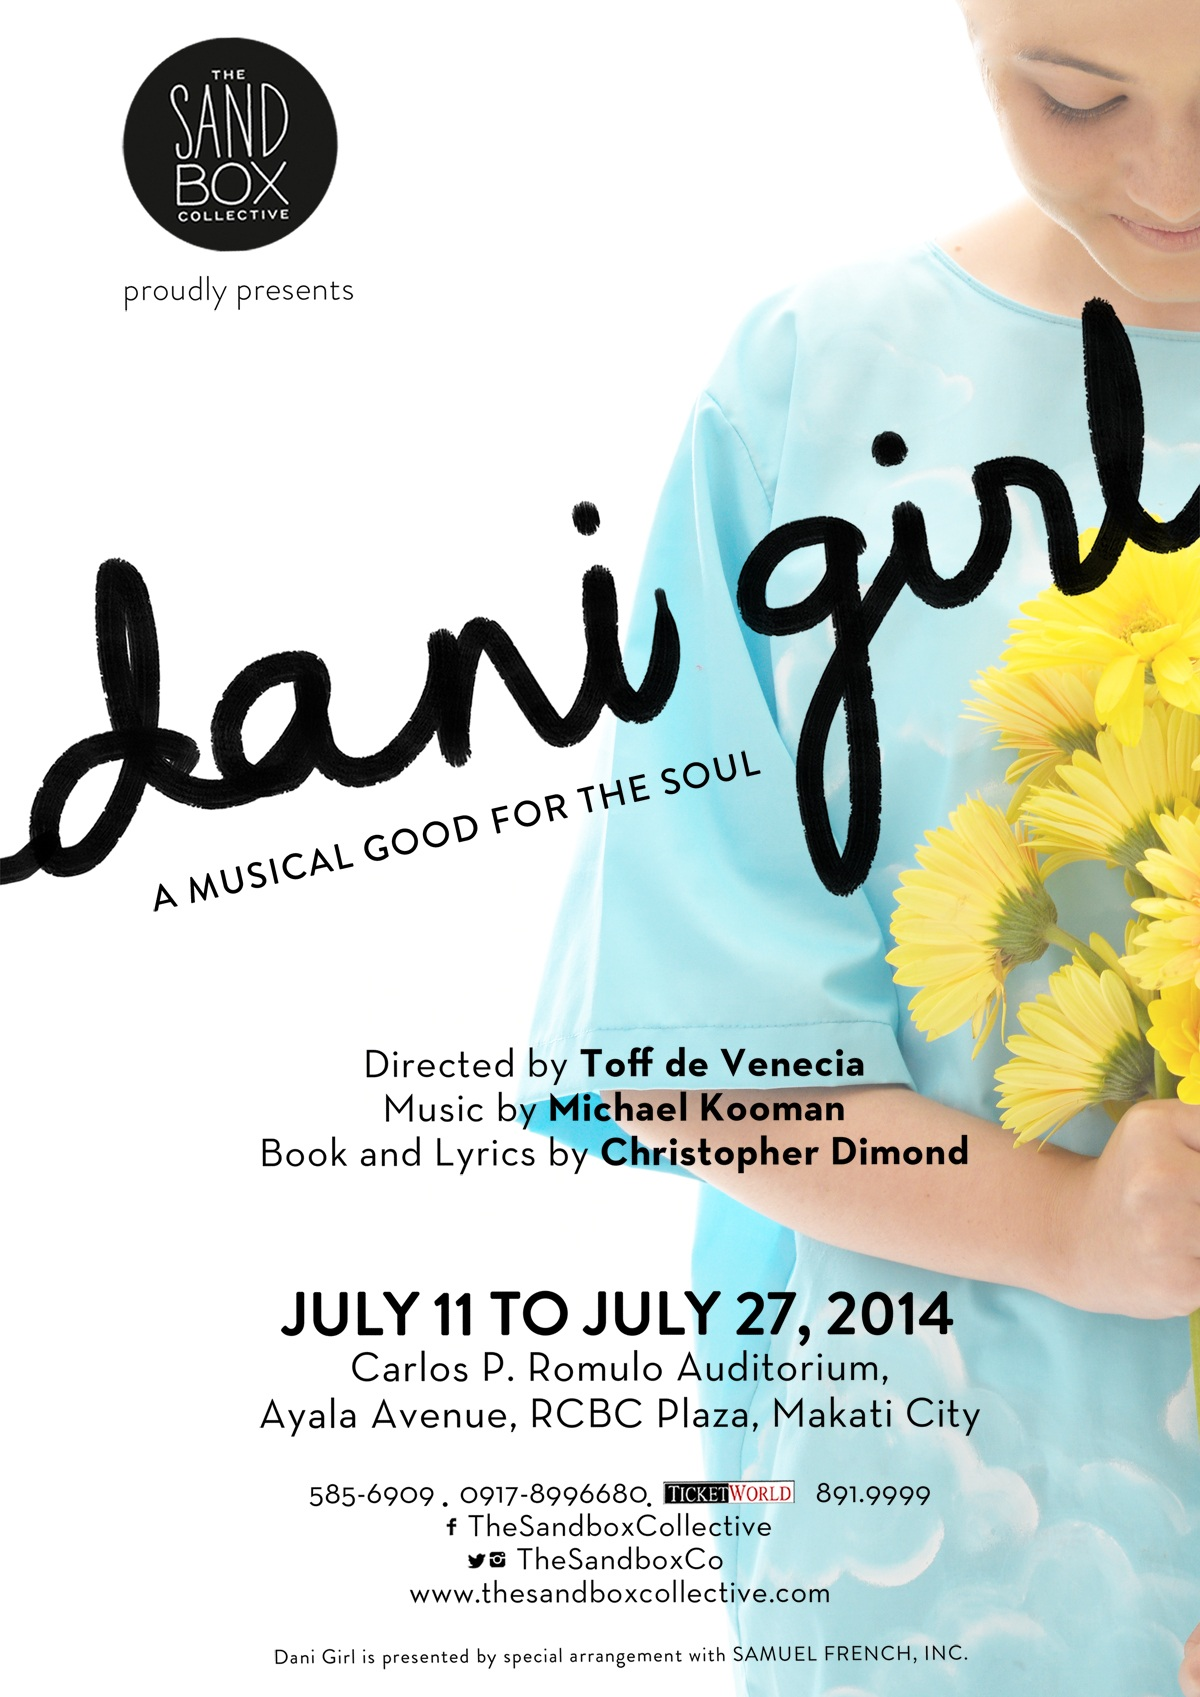 https://www.rappler.com/video/reports/63056-dani-girl-a-musical-for-the-soul